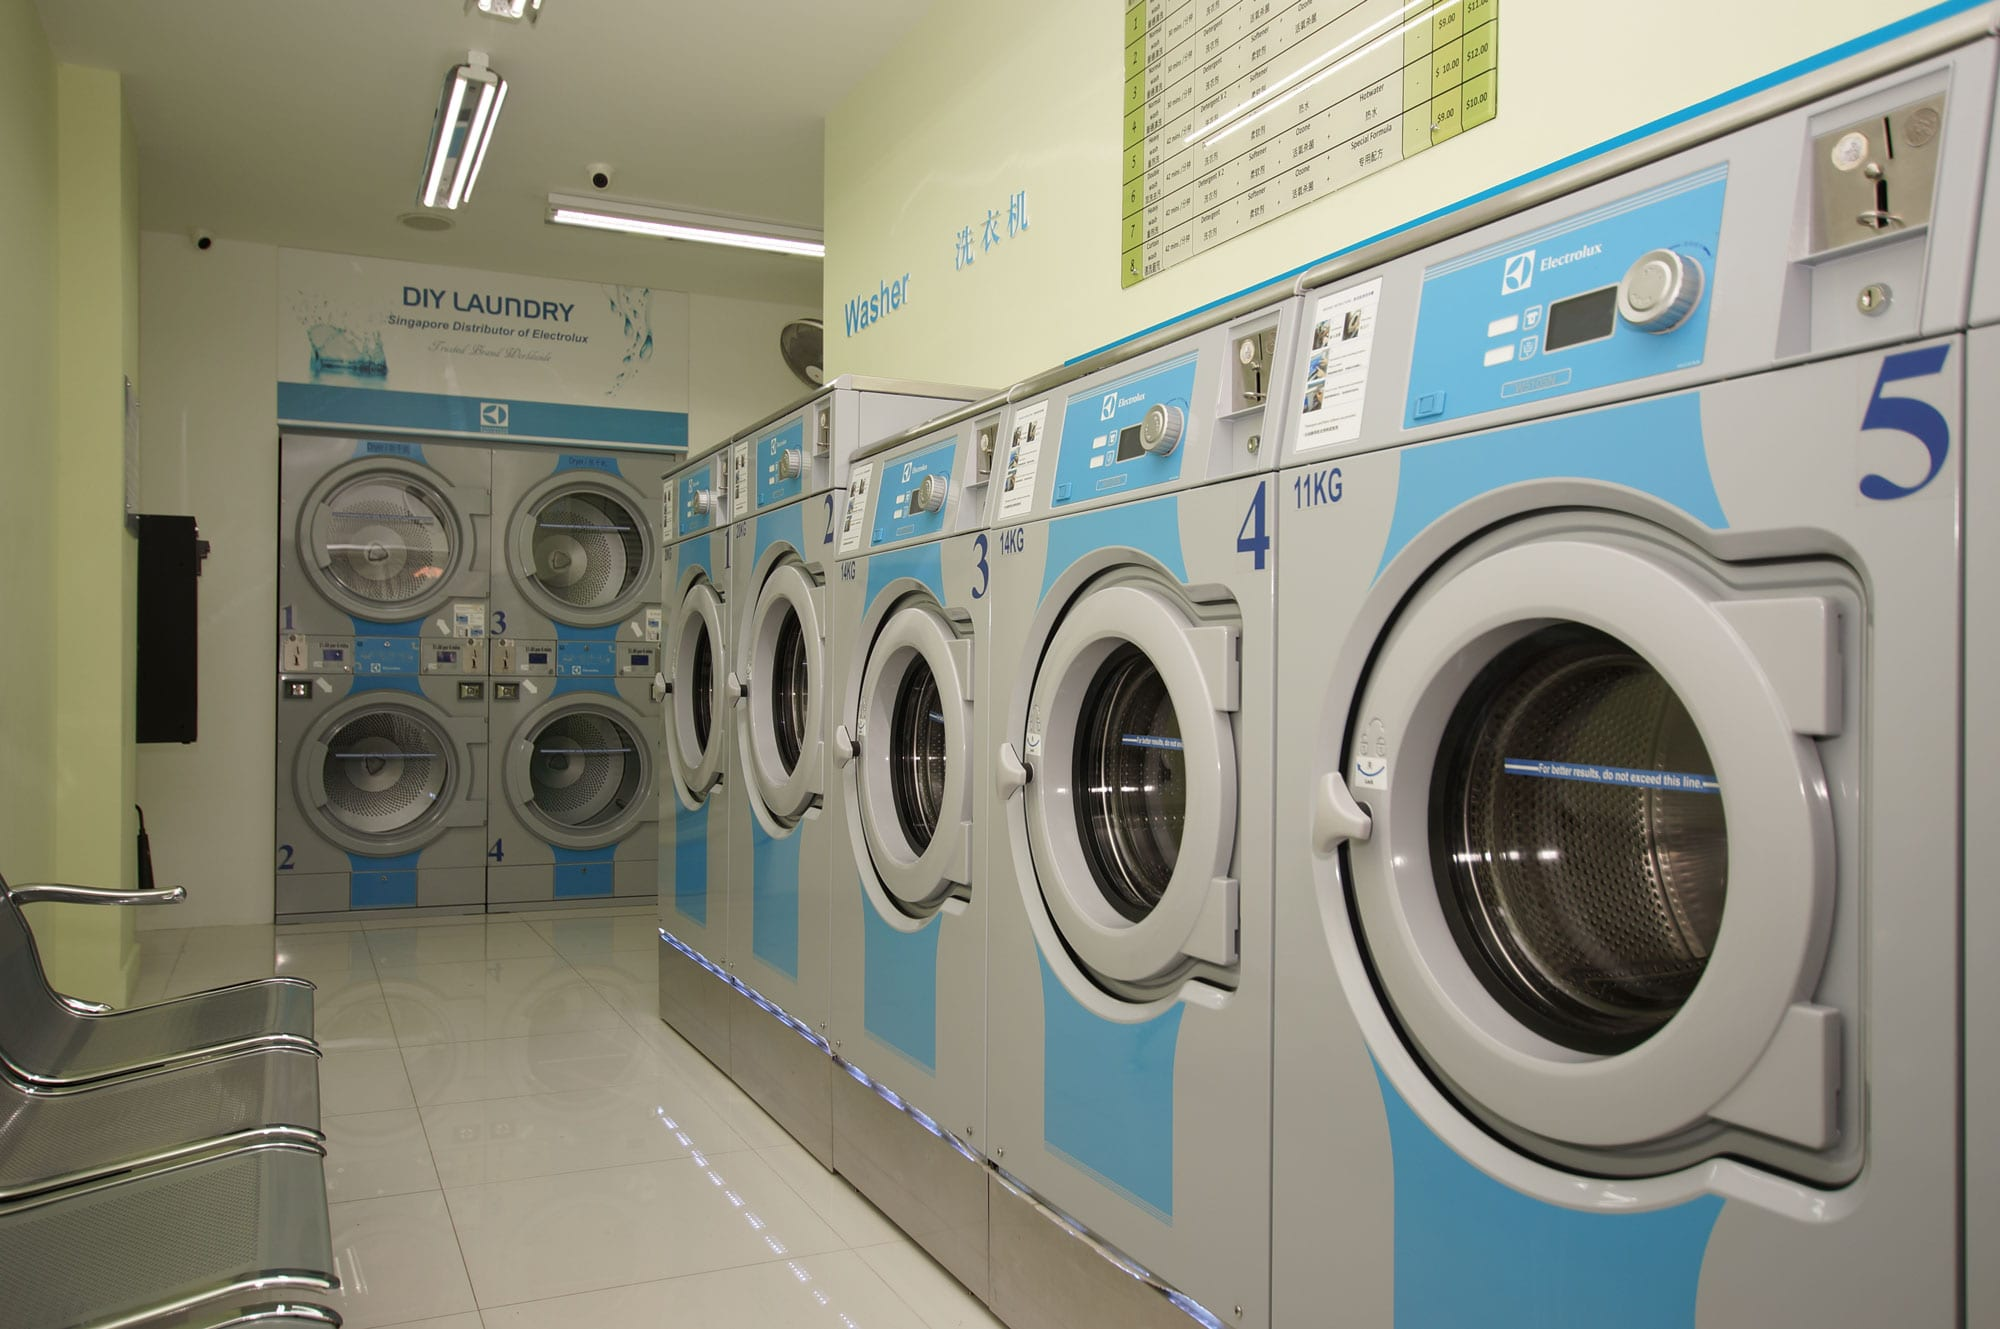 Diy laundry electrolux professional solutioingenieria Images